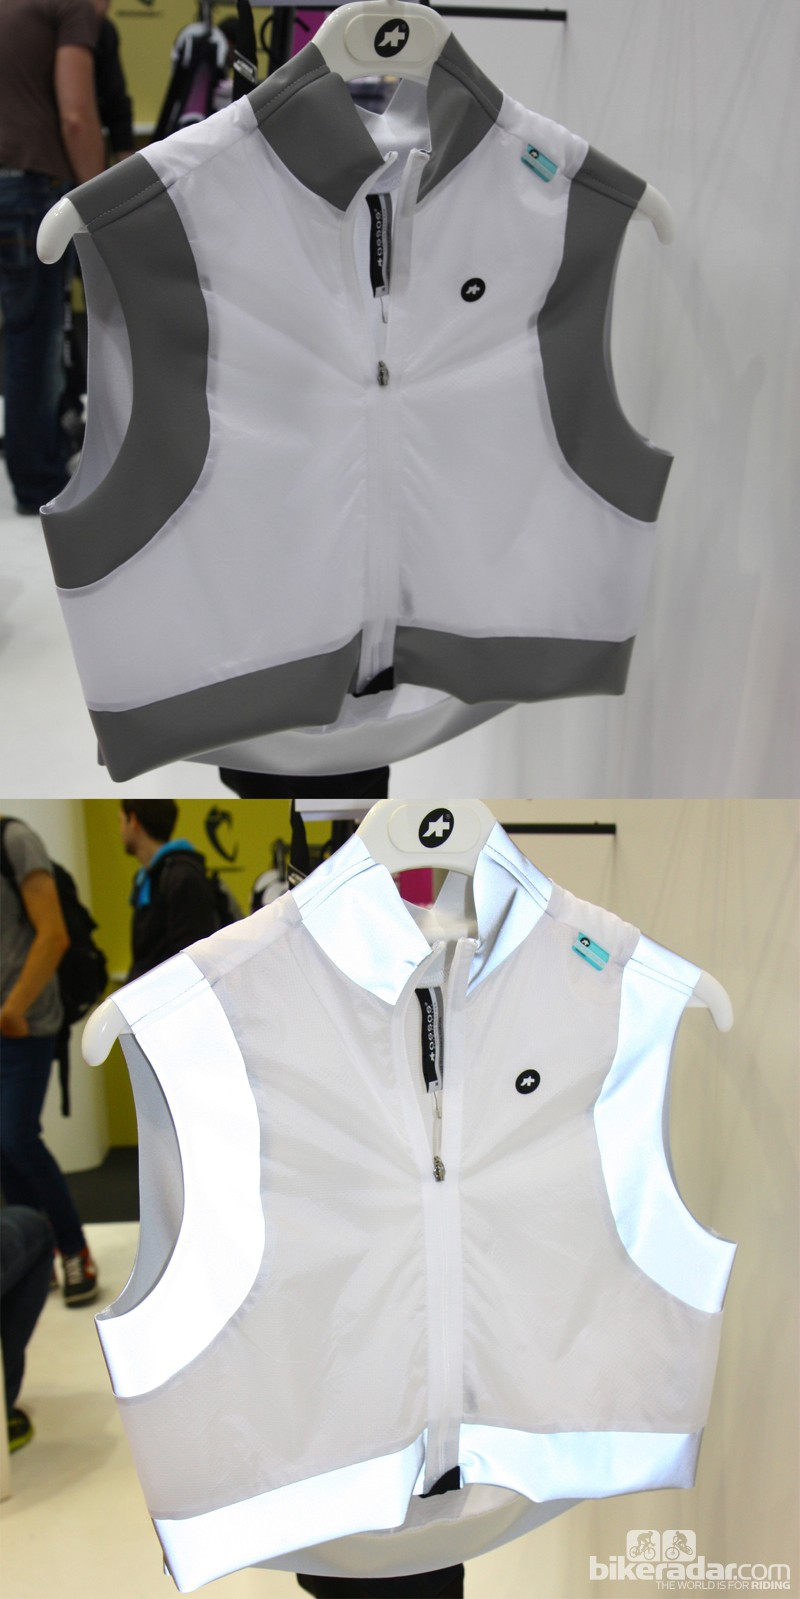 The Assos Emergency vest is meant for visibility, not weather protection. The top photo is of the vest in normal light; the lower photo was shot with a flash